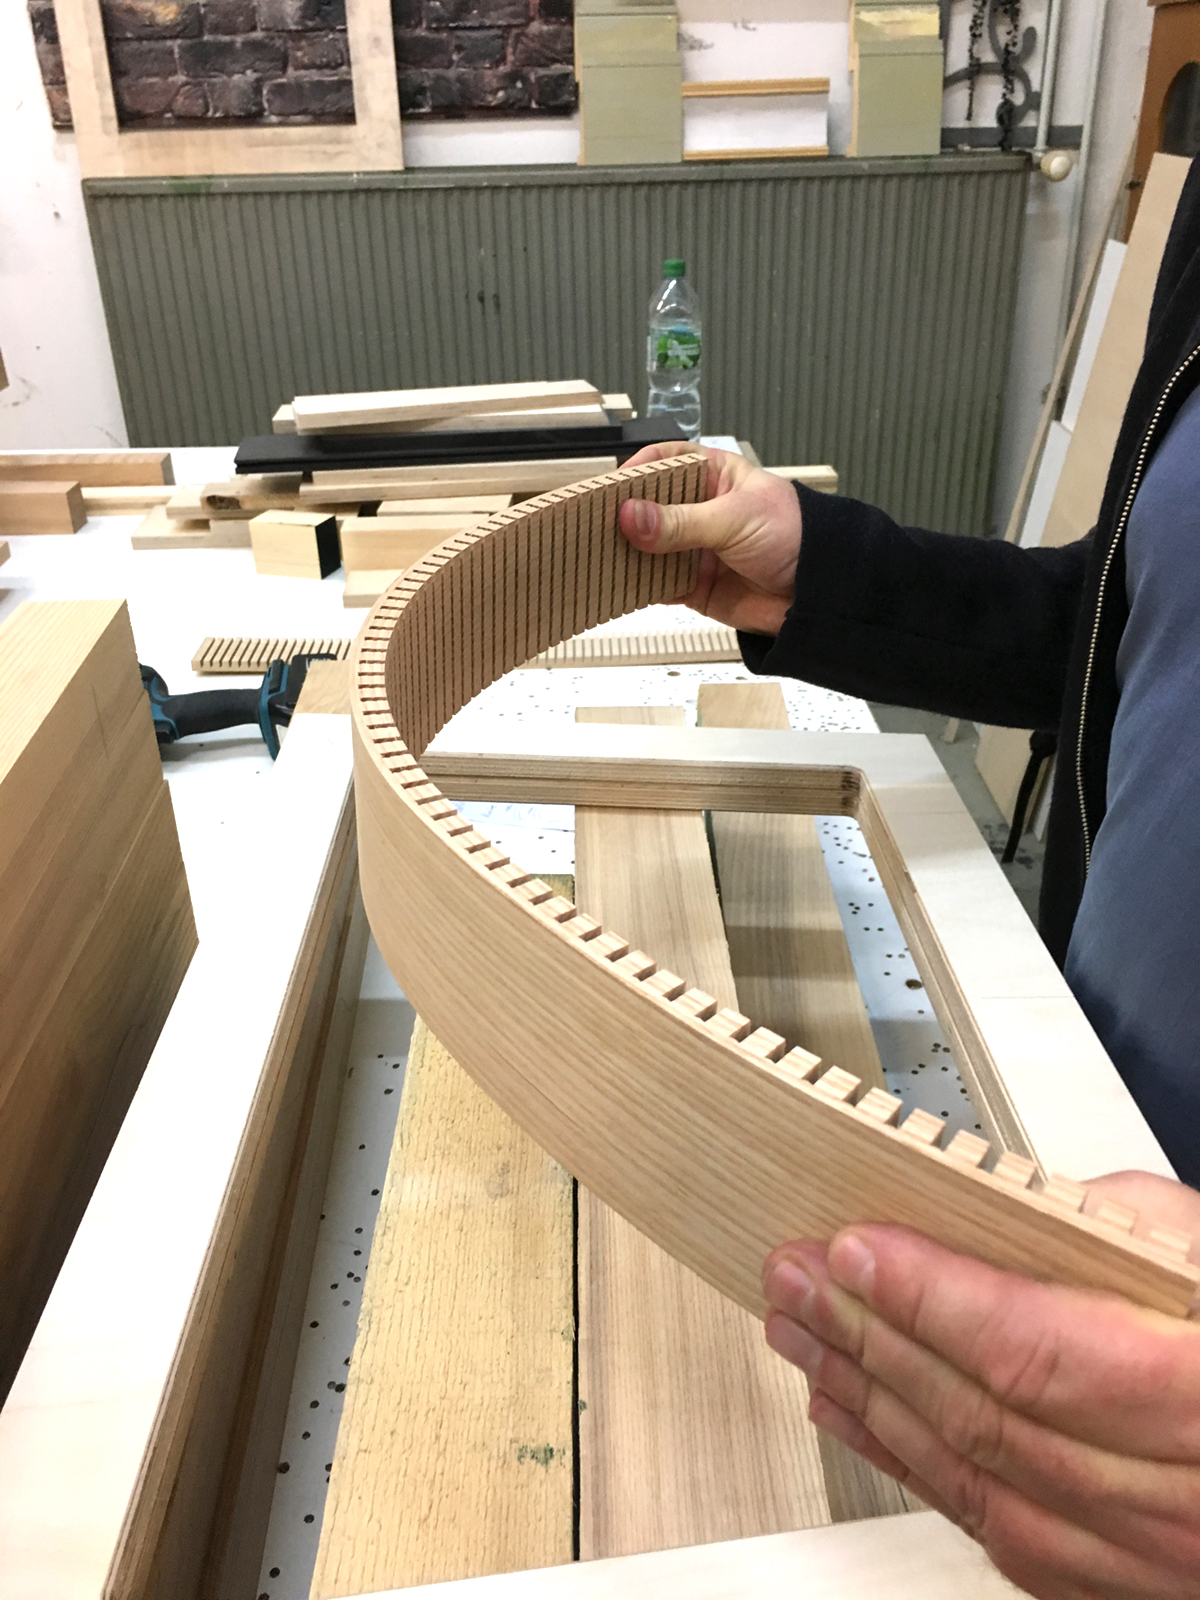 "<span class=""deutsch"">Konstruktionsdetail runder Bänke</span><span class=""englisch"">building the round benches</span>"